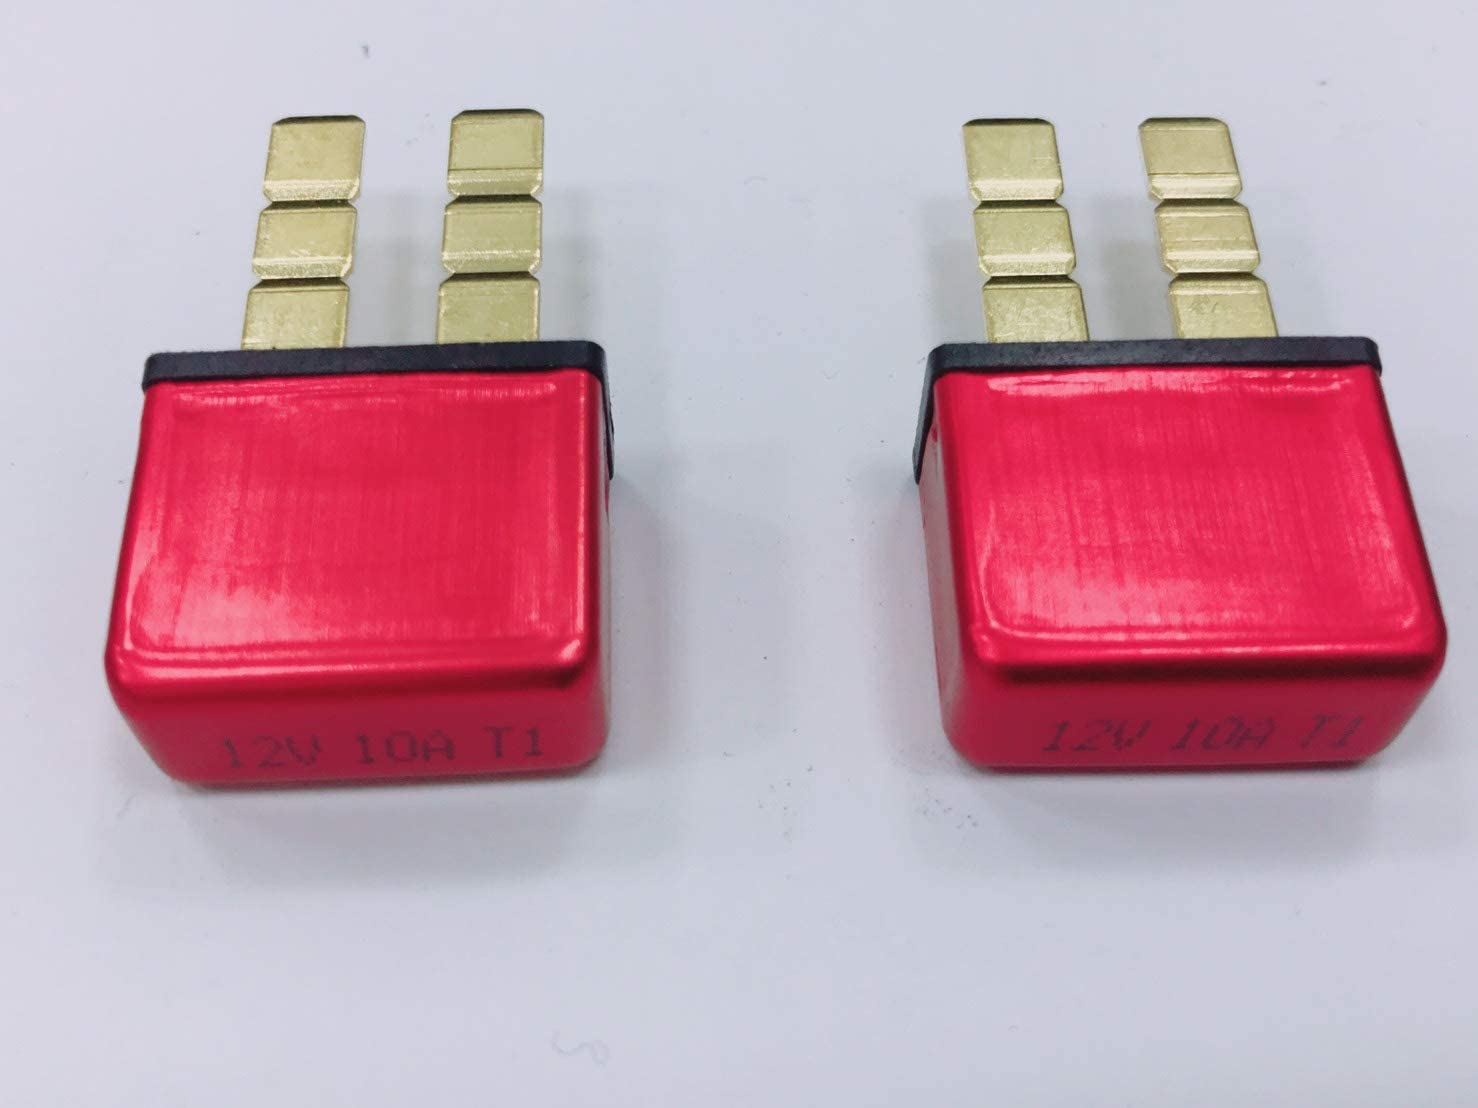 PHOTO-TOP 5A-30A Plug In Mounting 2 pcs ATC Blade Type Terminal Connection Automotive Circuit Breaker